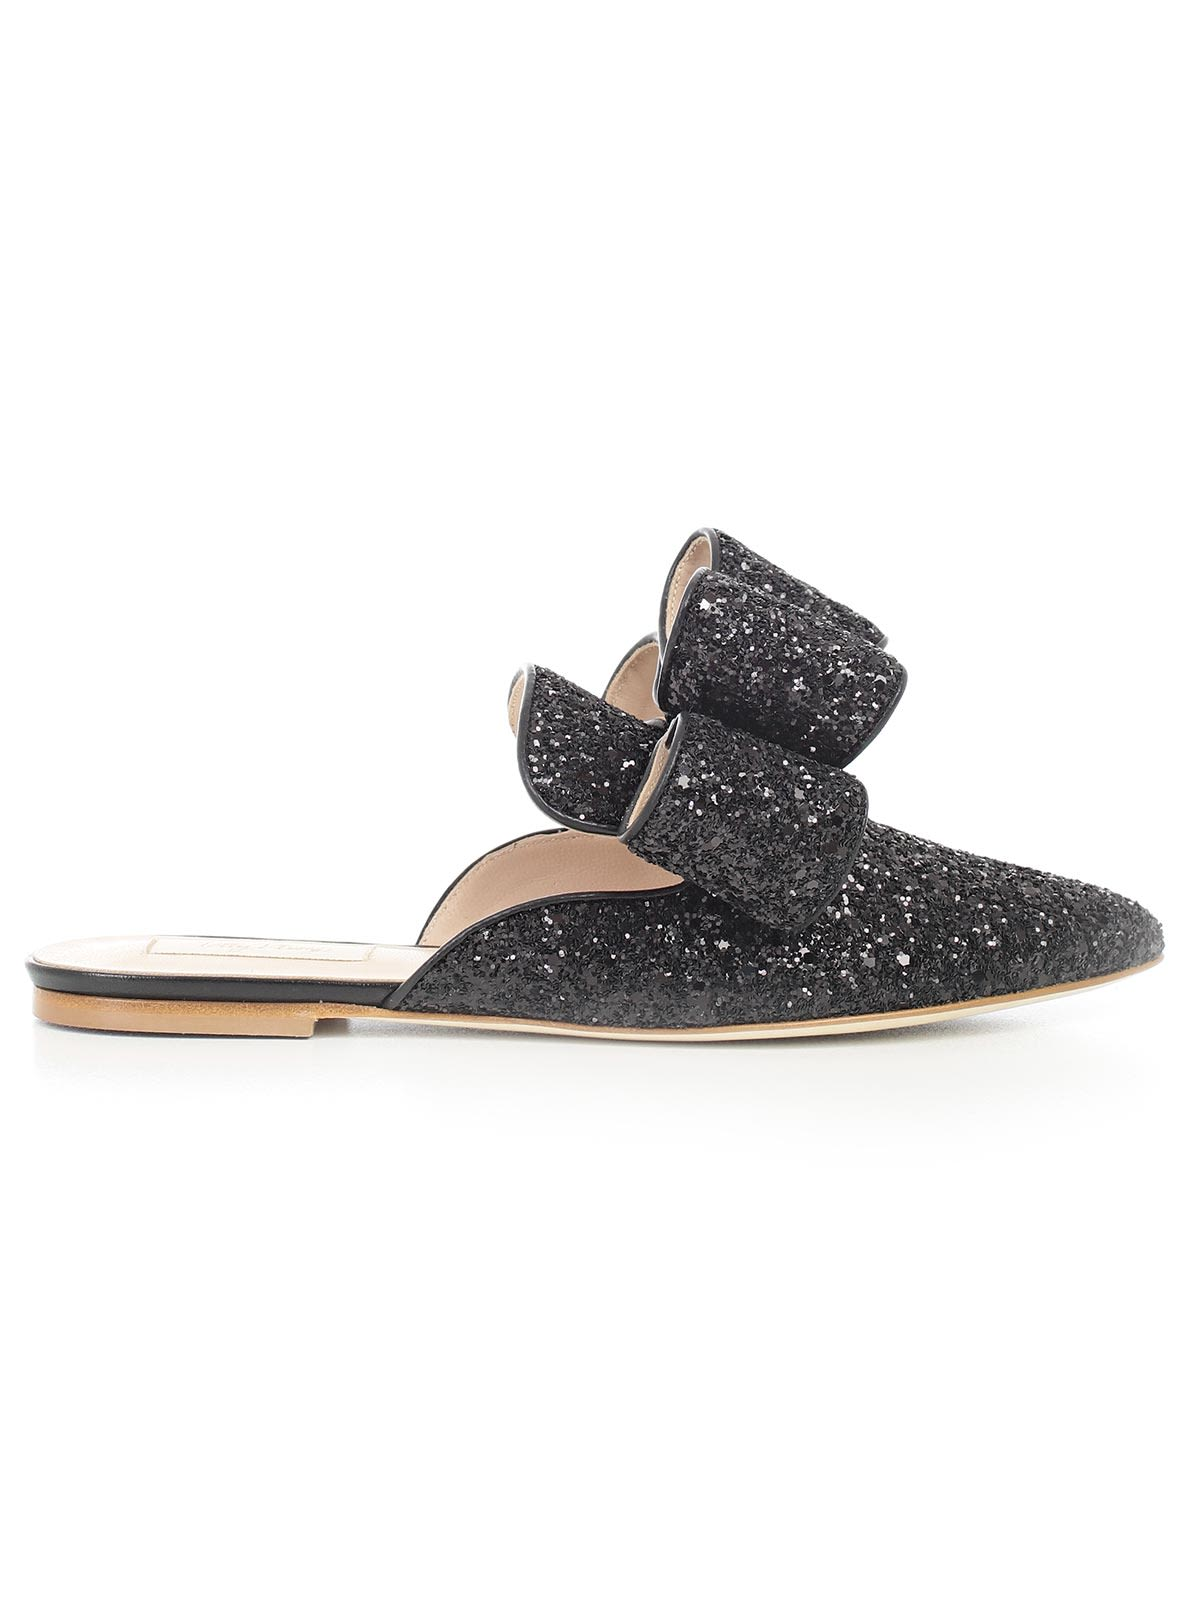 Polly Plume Flat Shoes Free Shipping Pick A Best ILSl2VgTj9